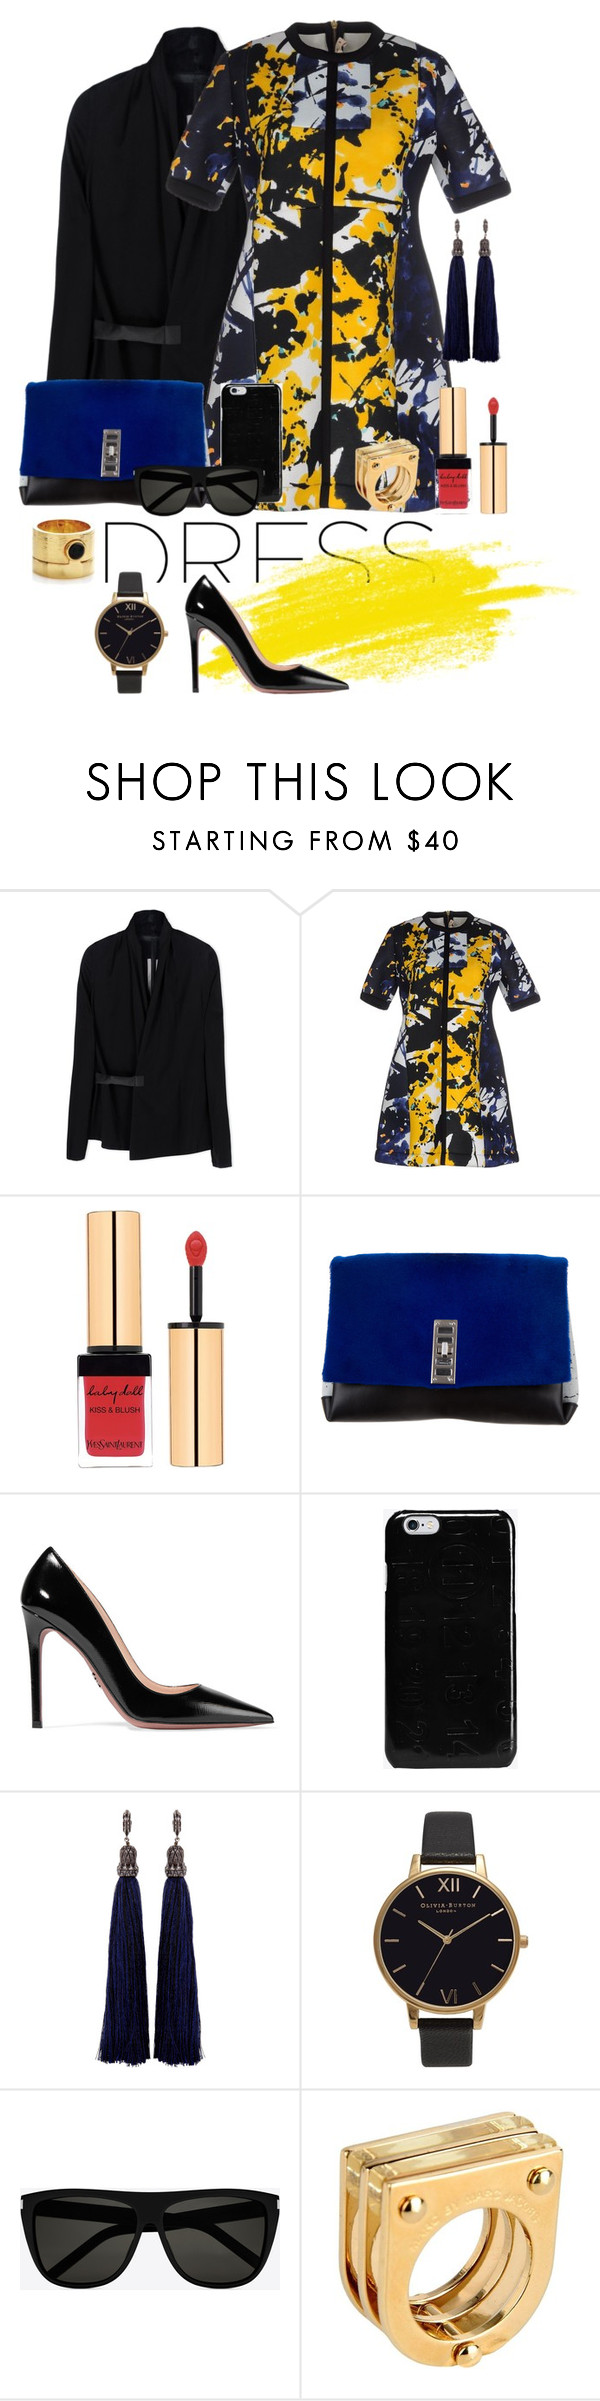 """""""Graffiti"""" by lomozui ❤ liked on Polyvore featuring Rick Owens, Marni, Yves Saint Laurent, Proenza Schouler, Prada, Maison Margiela, Lanvin, Olivia Burton and Marc by Marc Jacobs"""